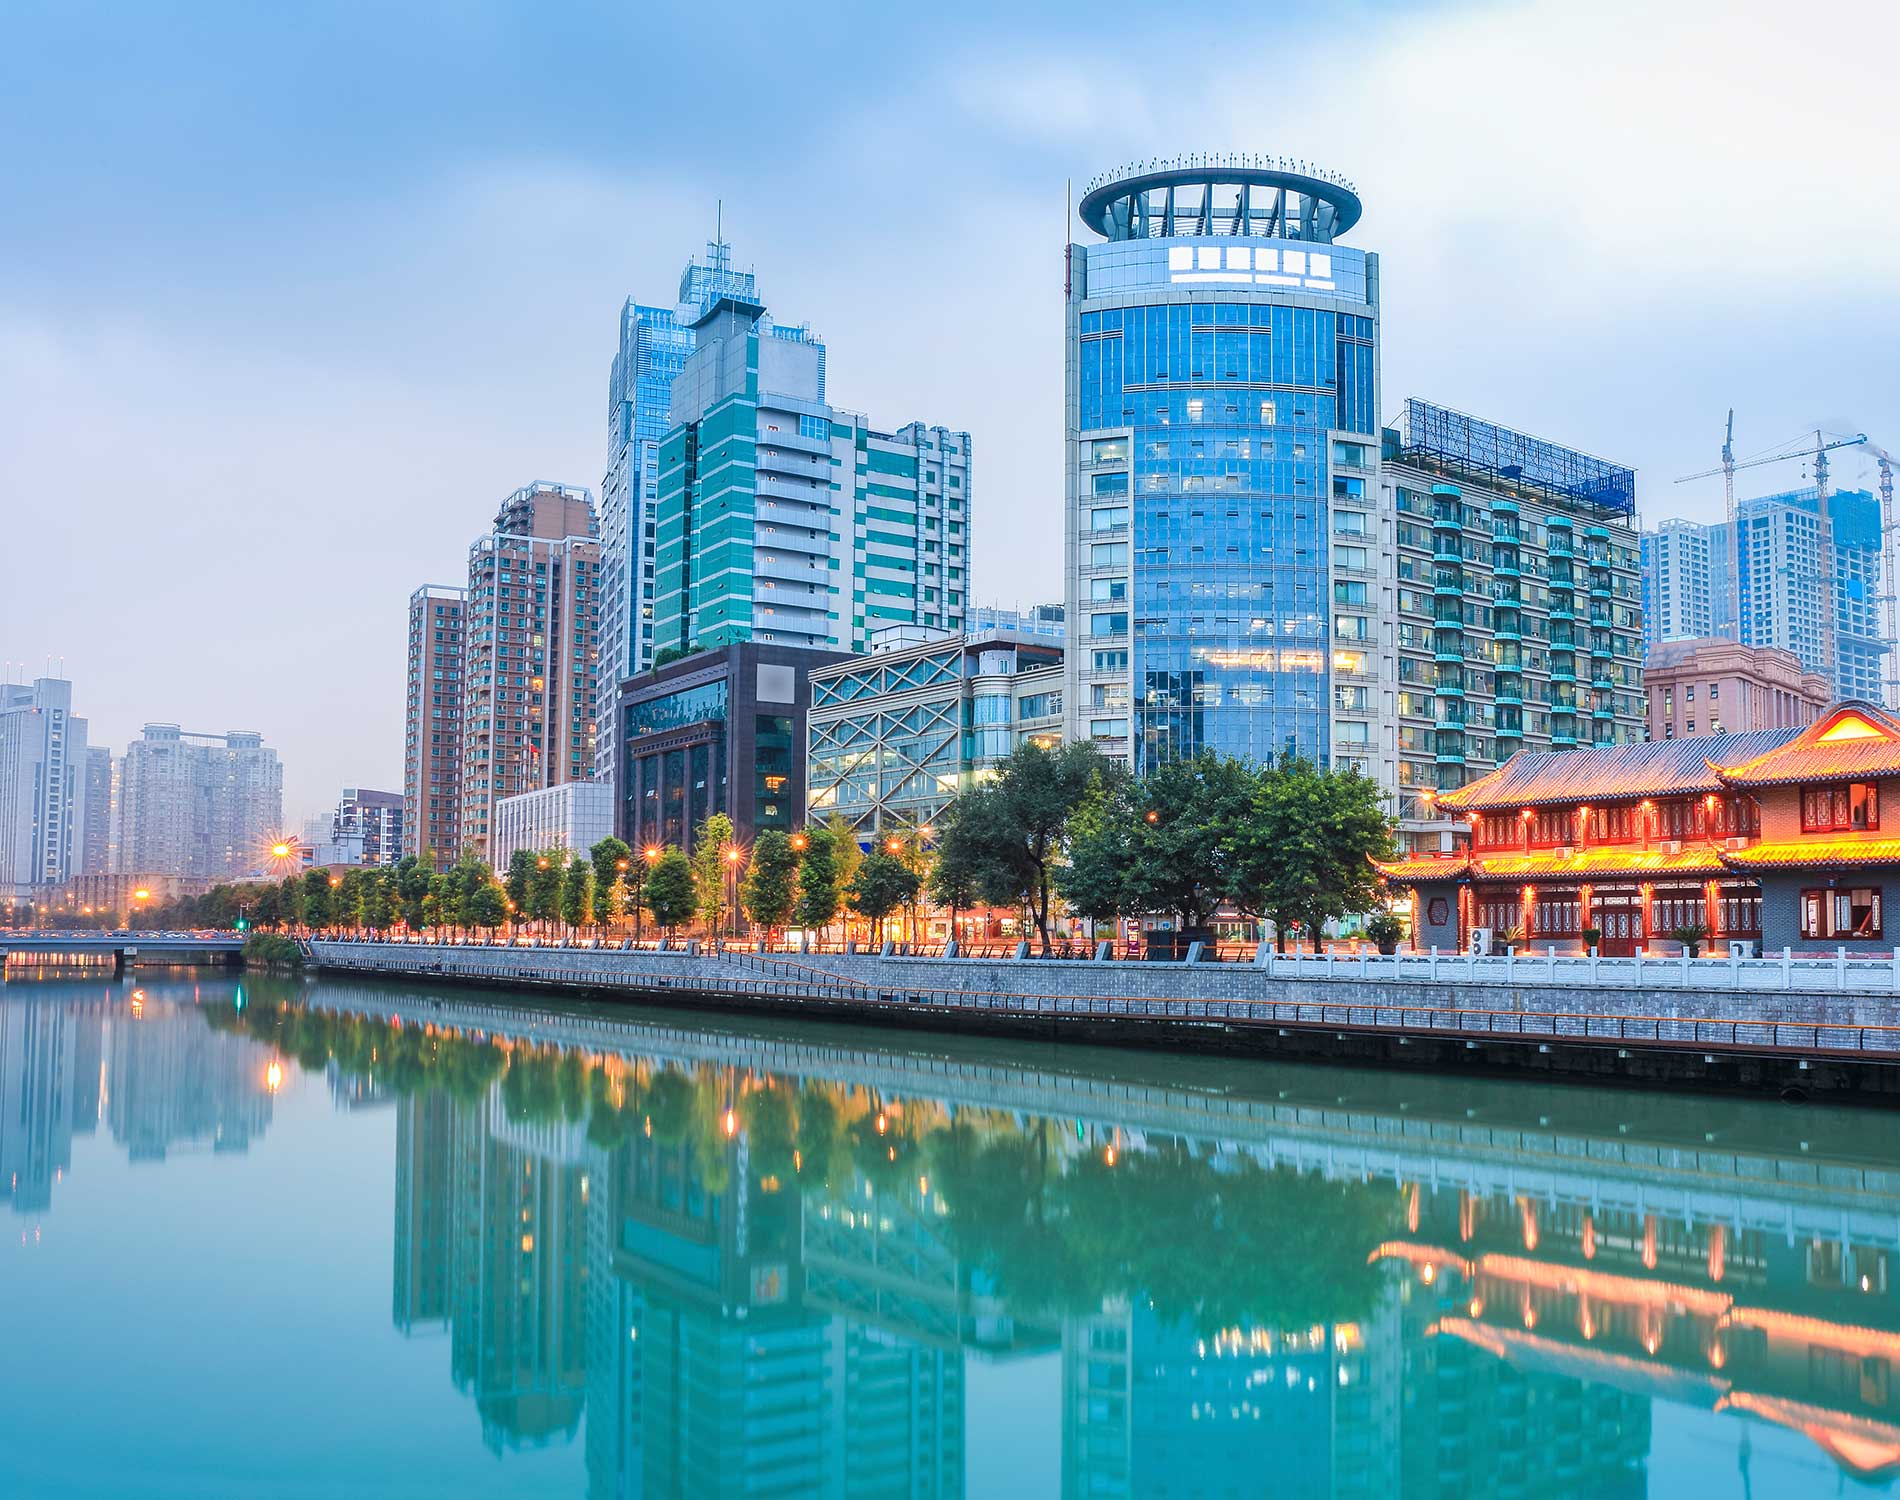 /-/media/images/website/background-images/offices/chengdu/chengdu_city_1900x1500px.ashx